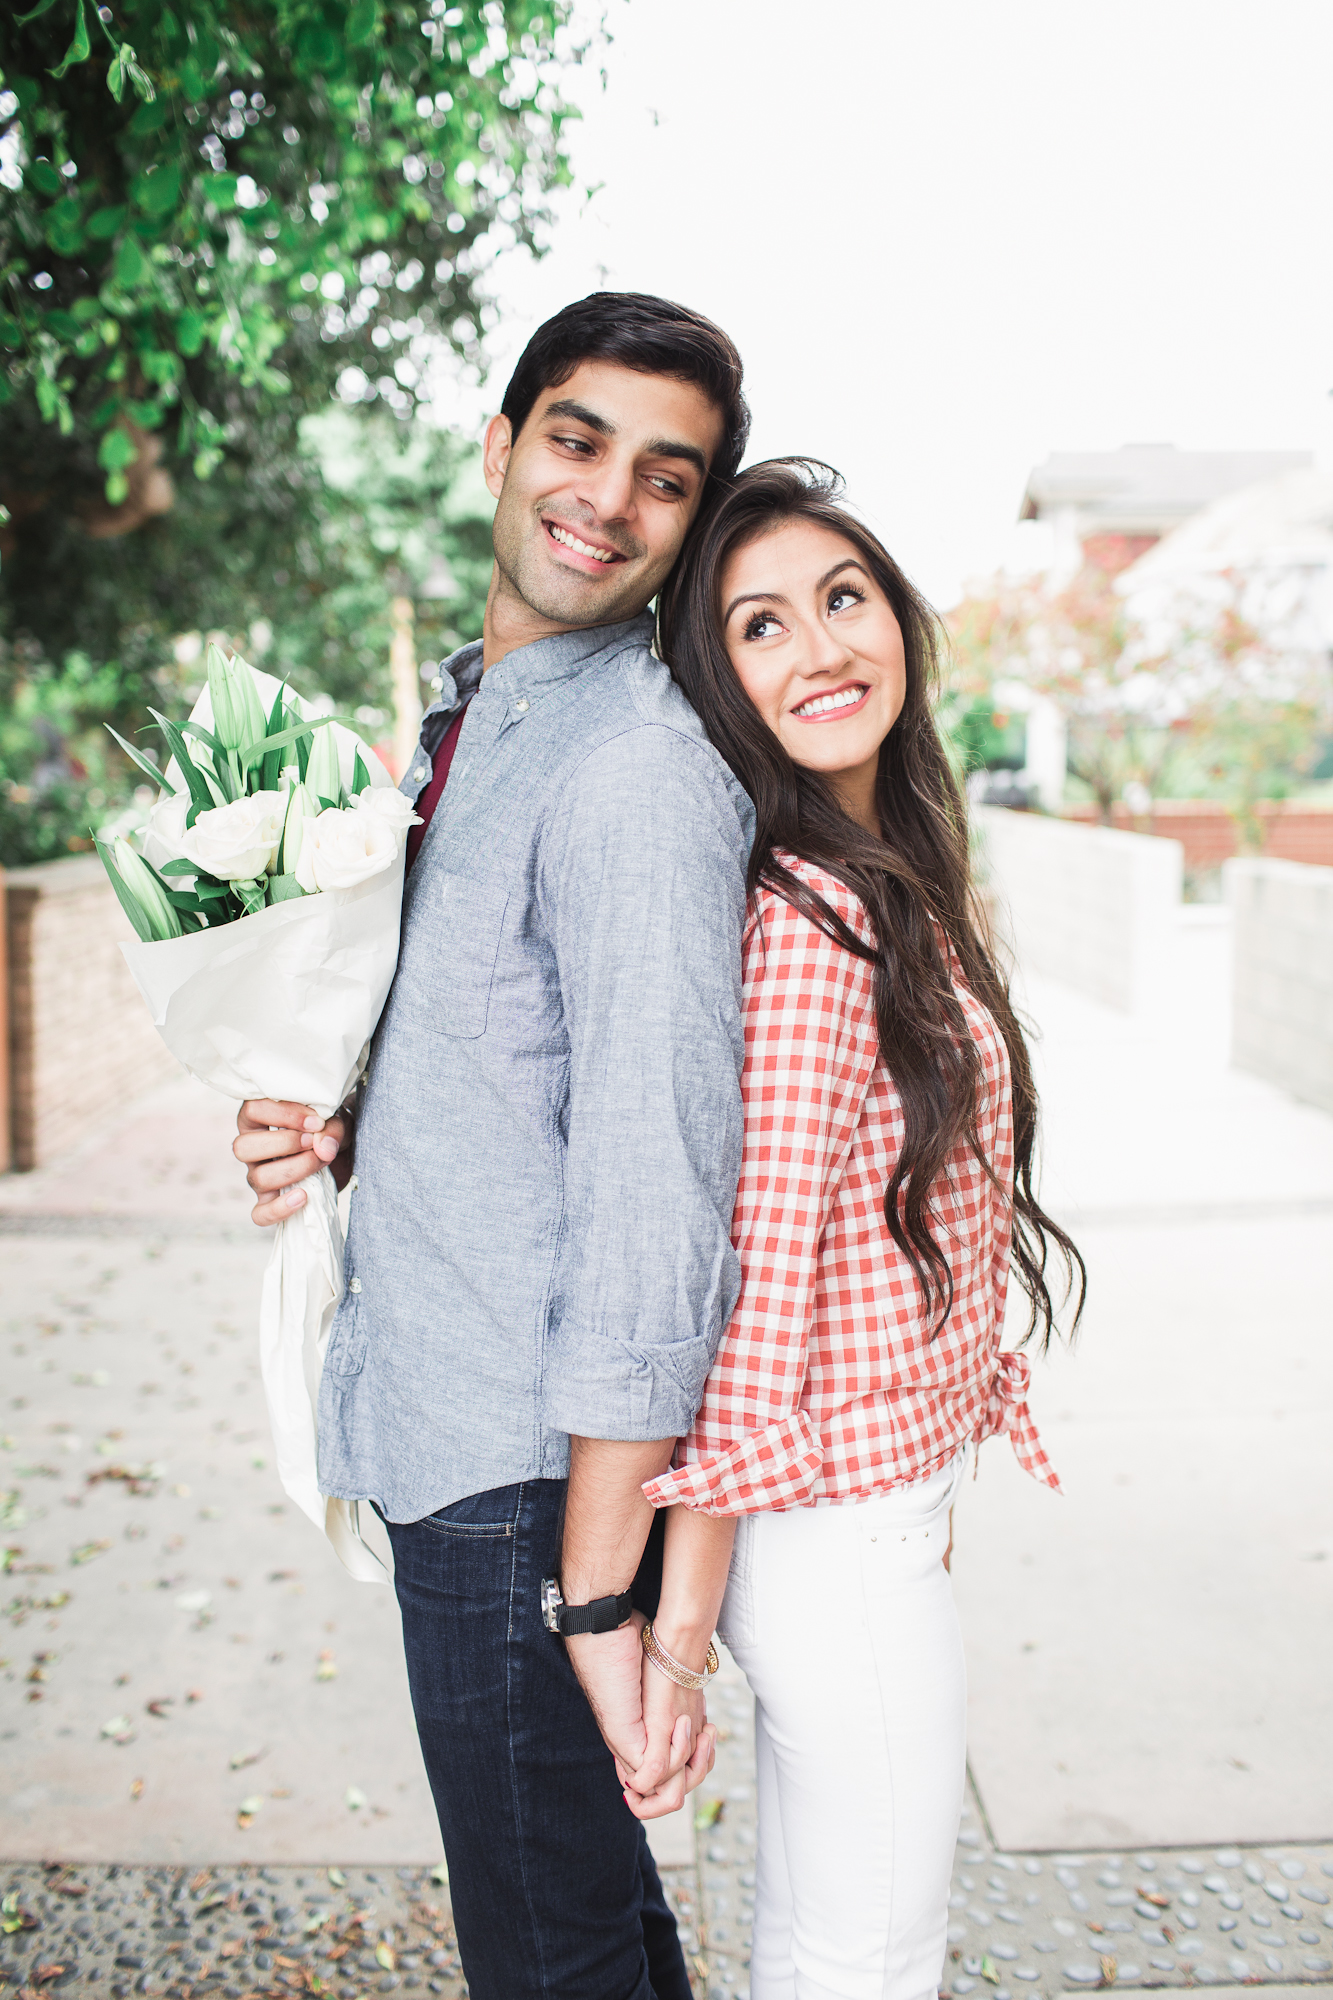 Flor + Umair's engagement shoot. AH, I was and still am so obsessed w/ these two. The second you meet them, you understand why they were meant for each other.